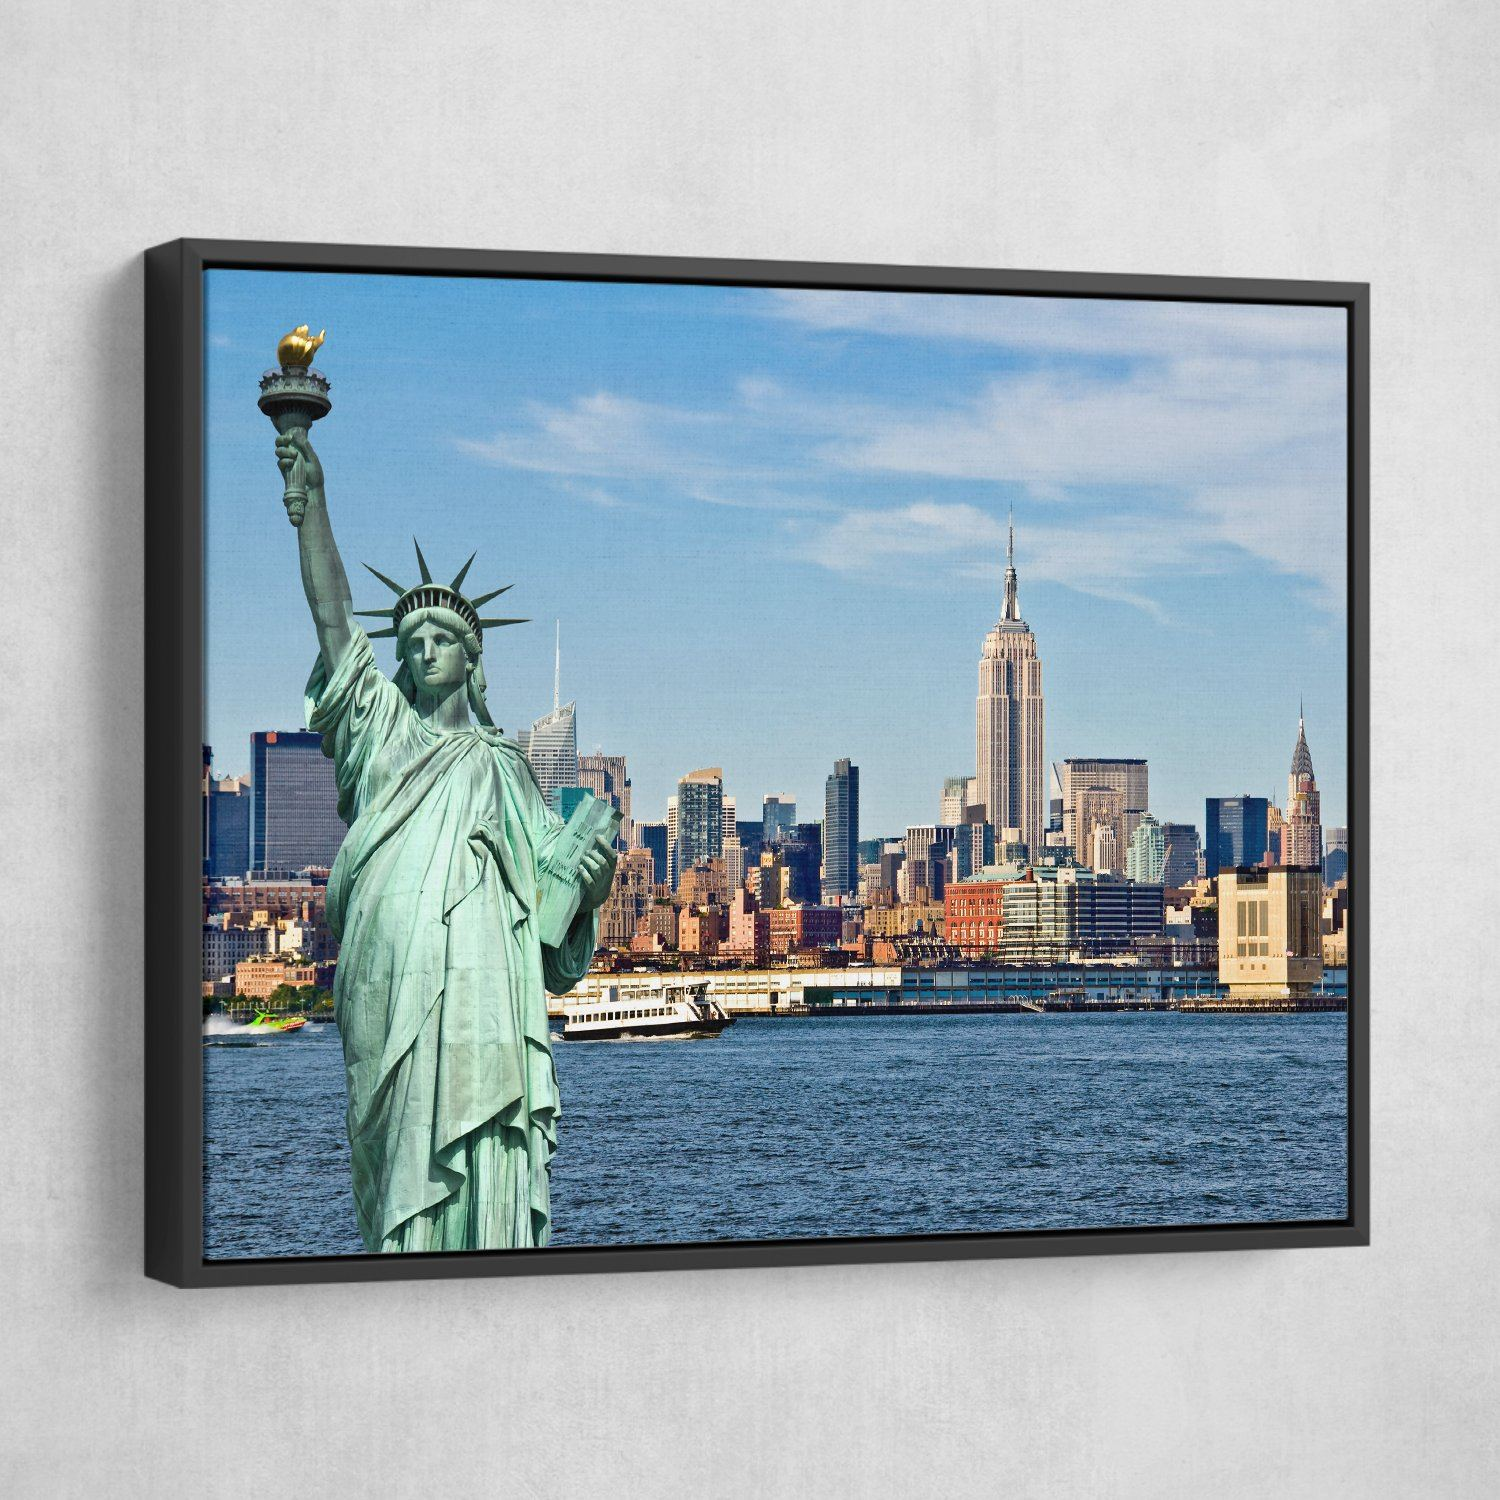 Statue of liberty wall art black frame